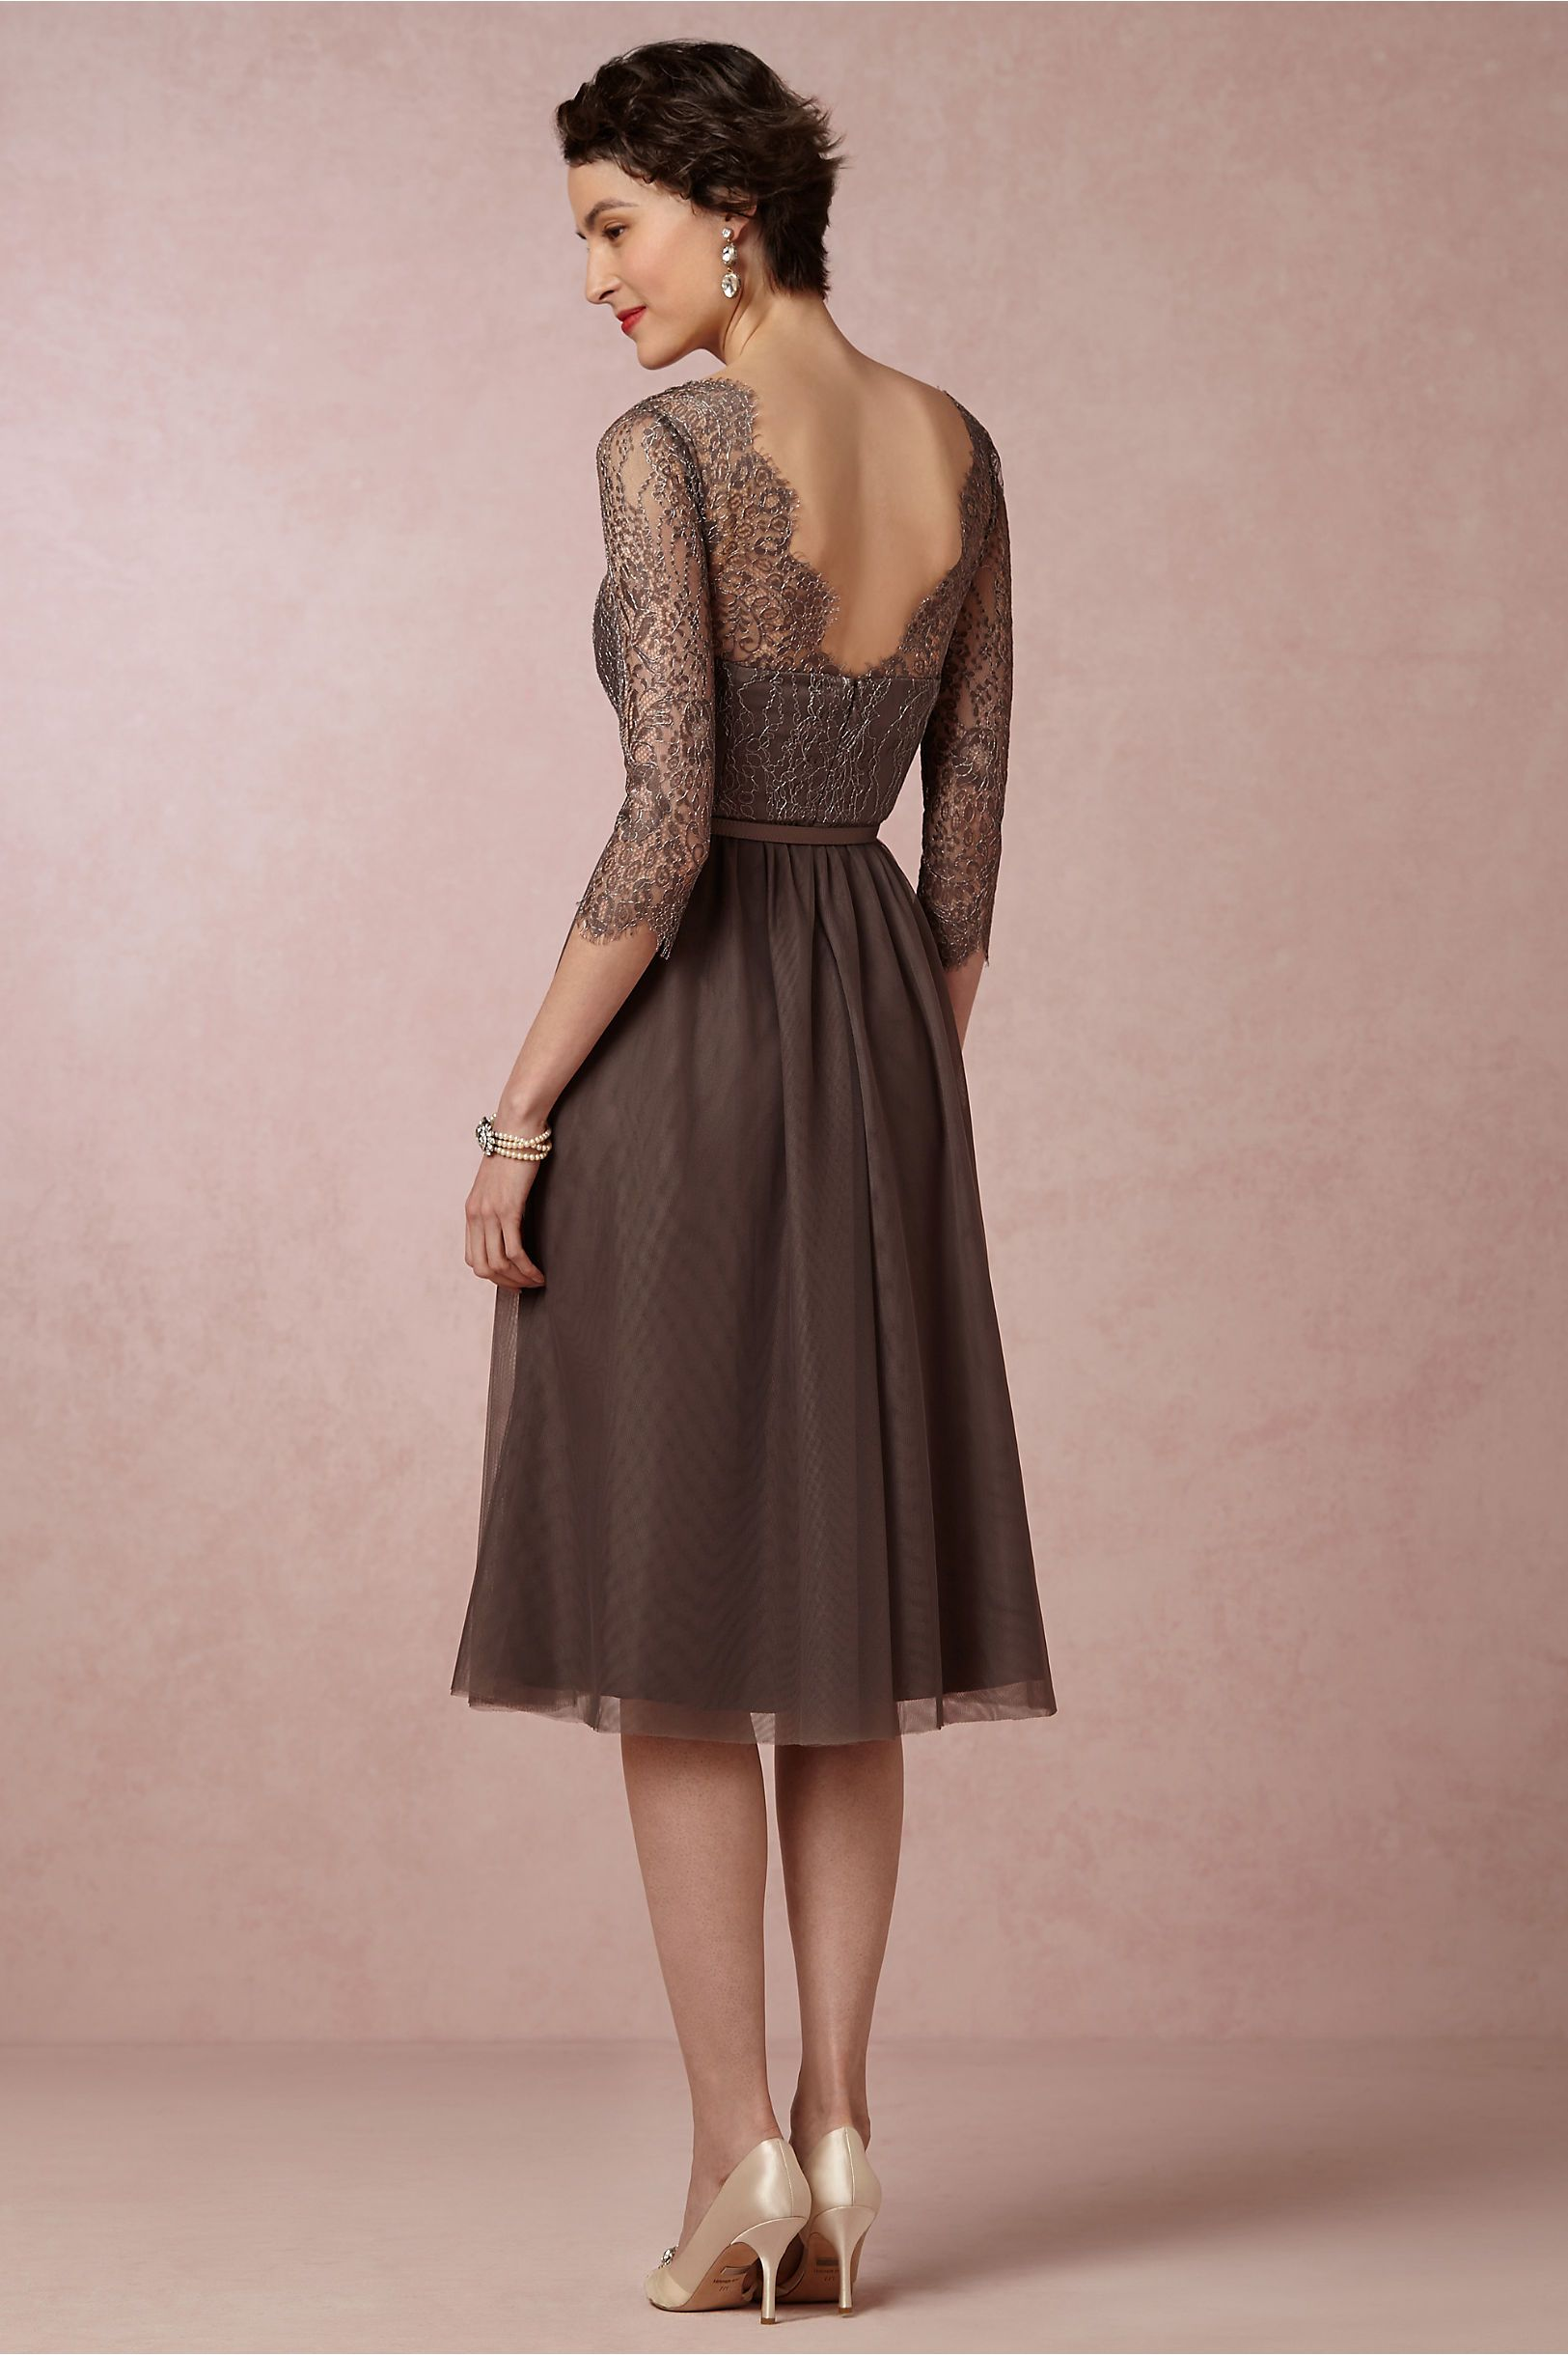 Sapphire Dress from BHLDN - Stunning Mother of the bride dress. Not ...